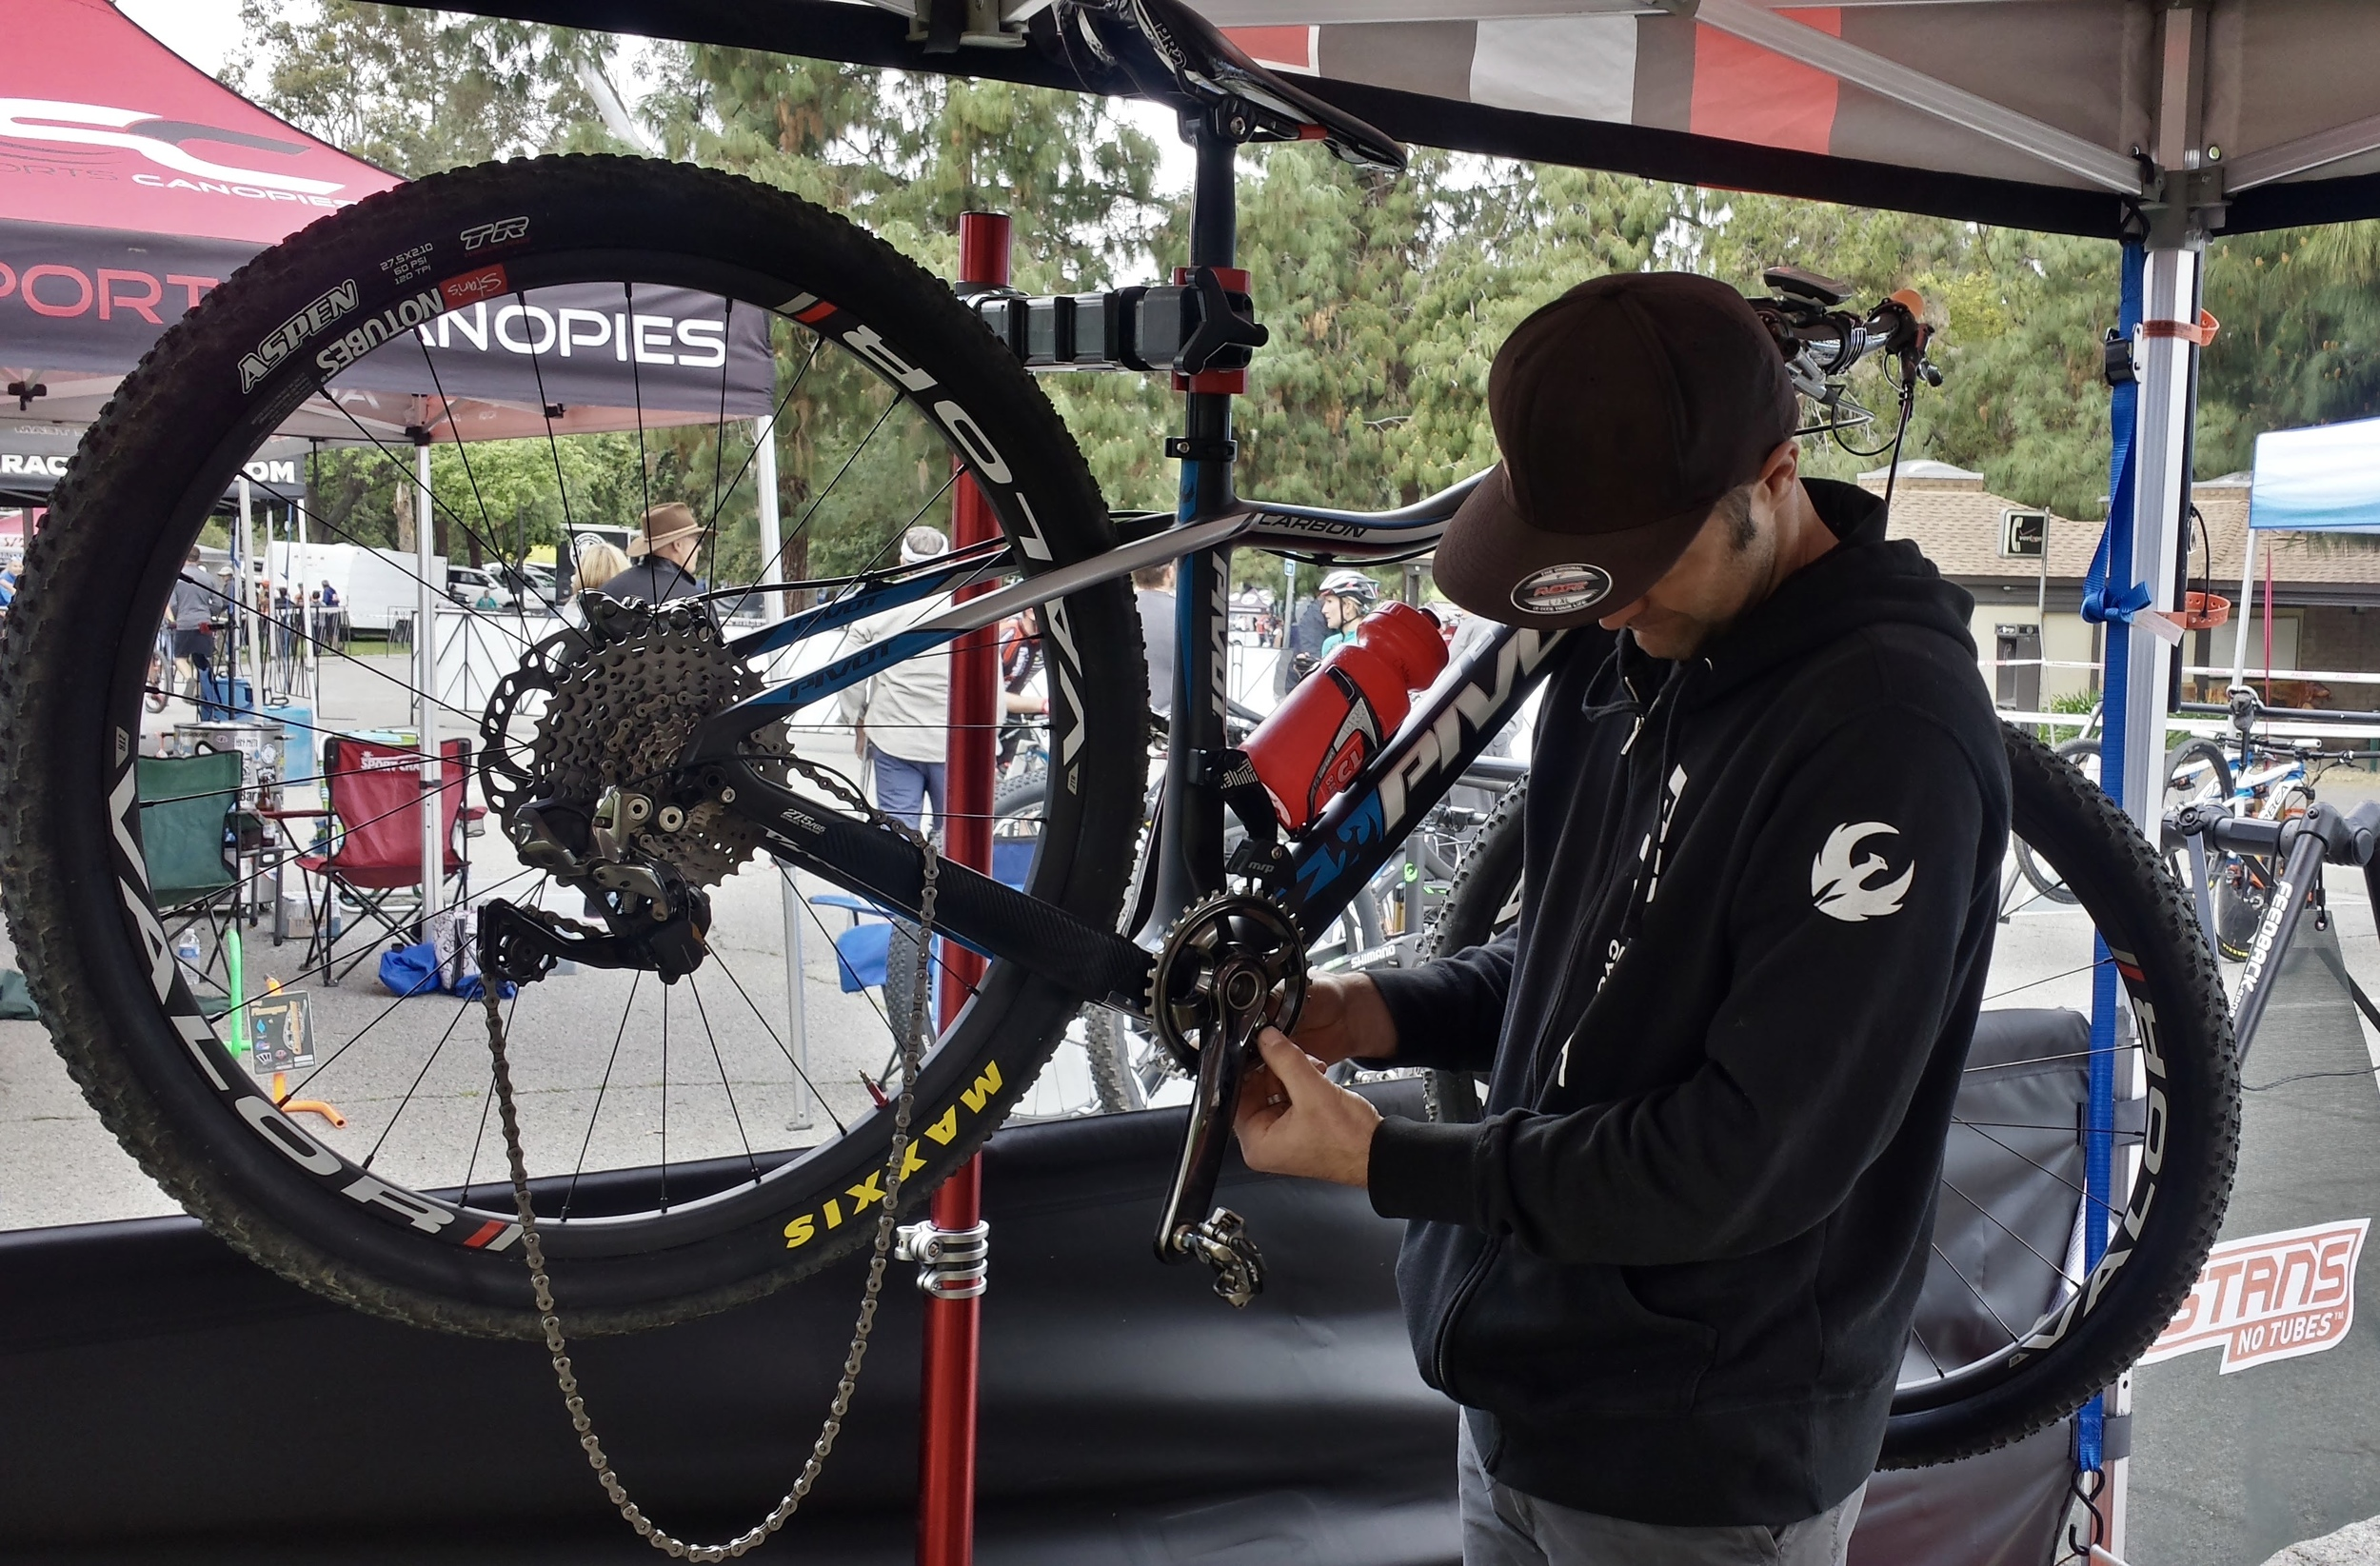 TJ setting up the Pivot Les 27.5 for short track racing by adding some 'teeth' to the setup for the fast track. The Shimano XTR DI2 drivetrain lives up to the hype.